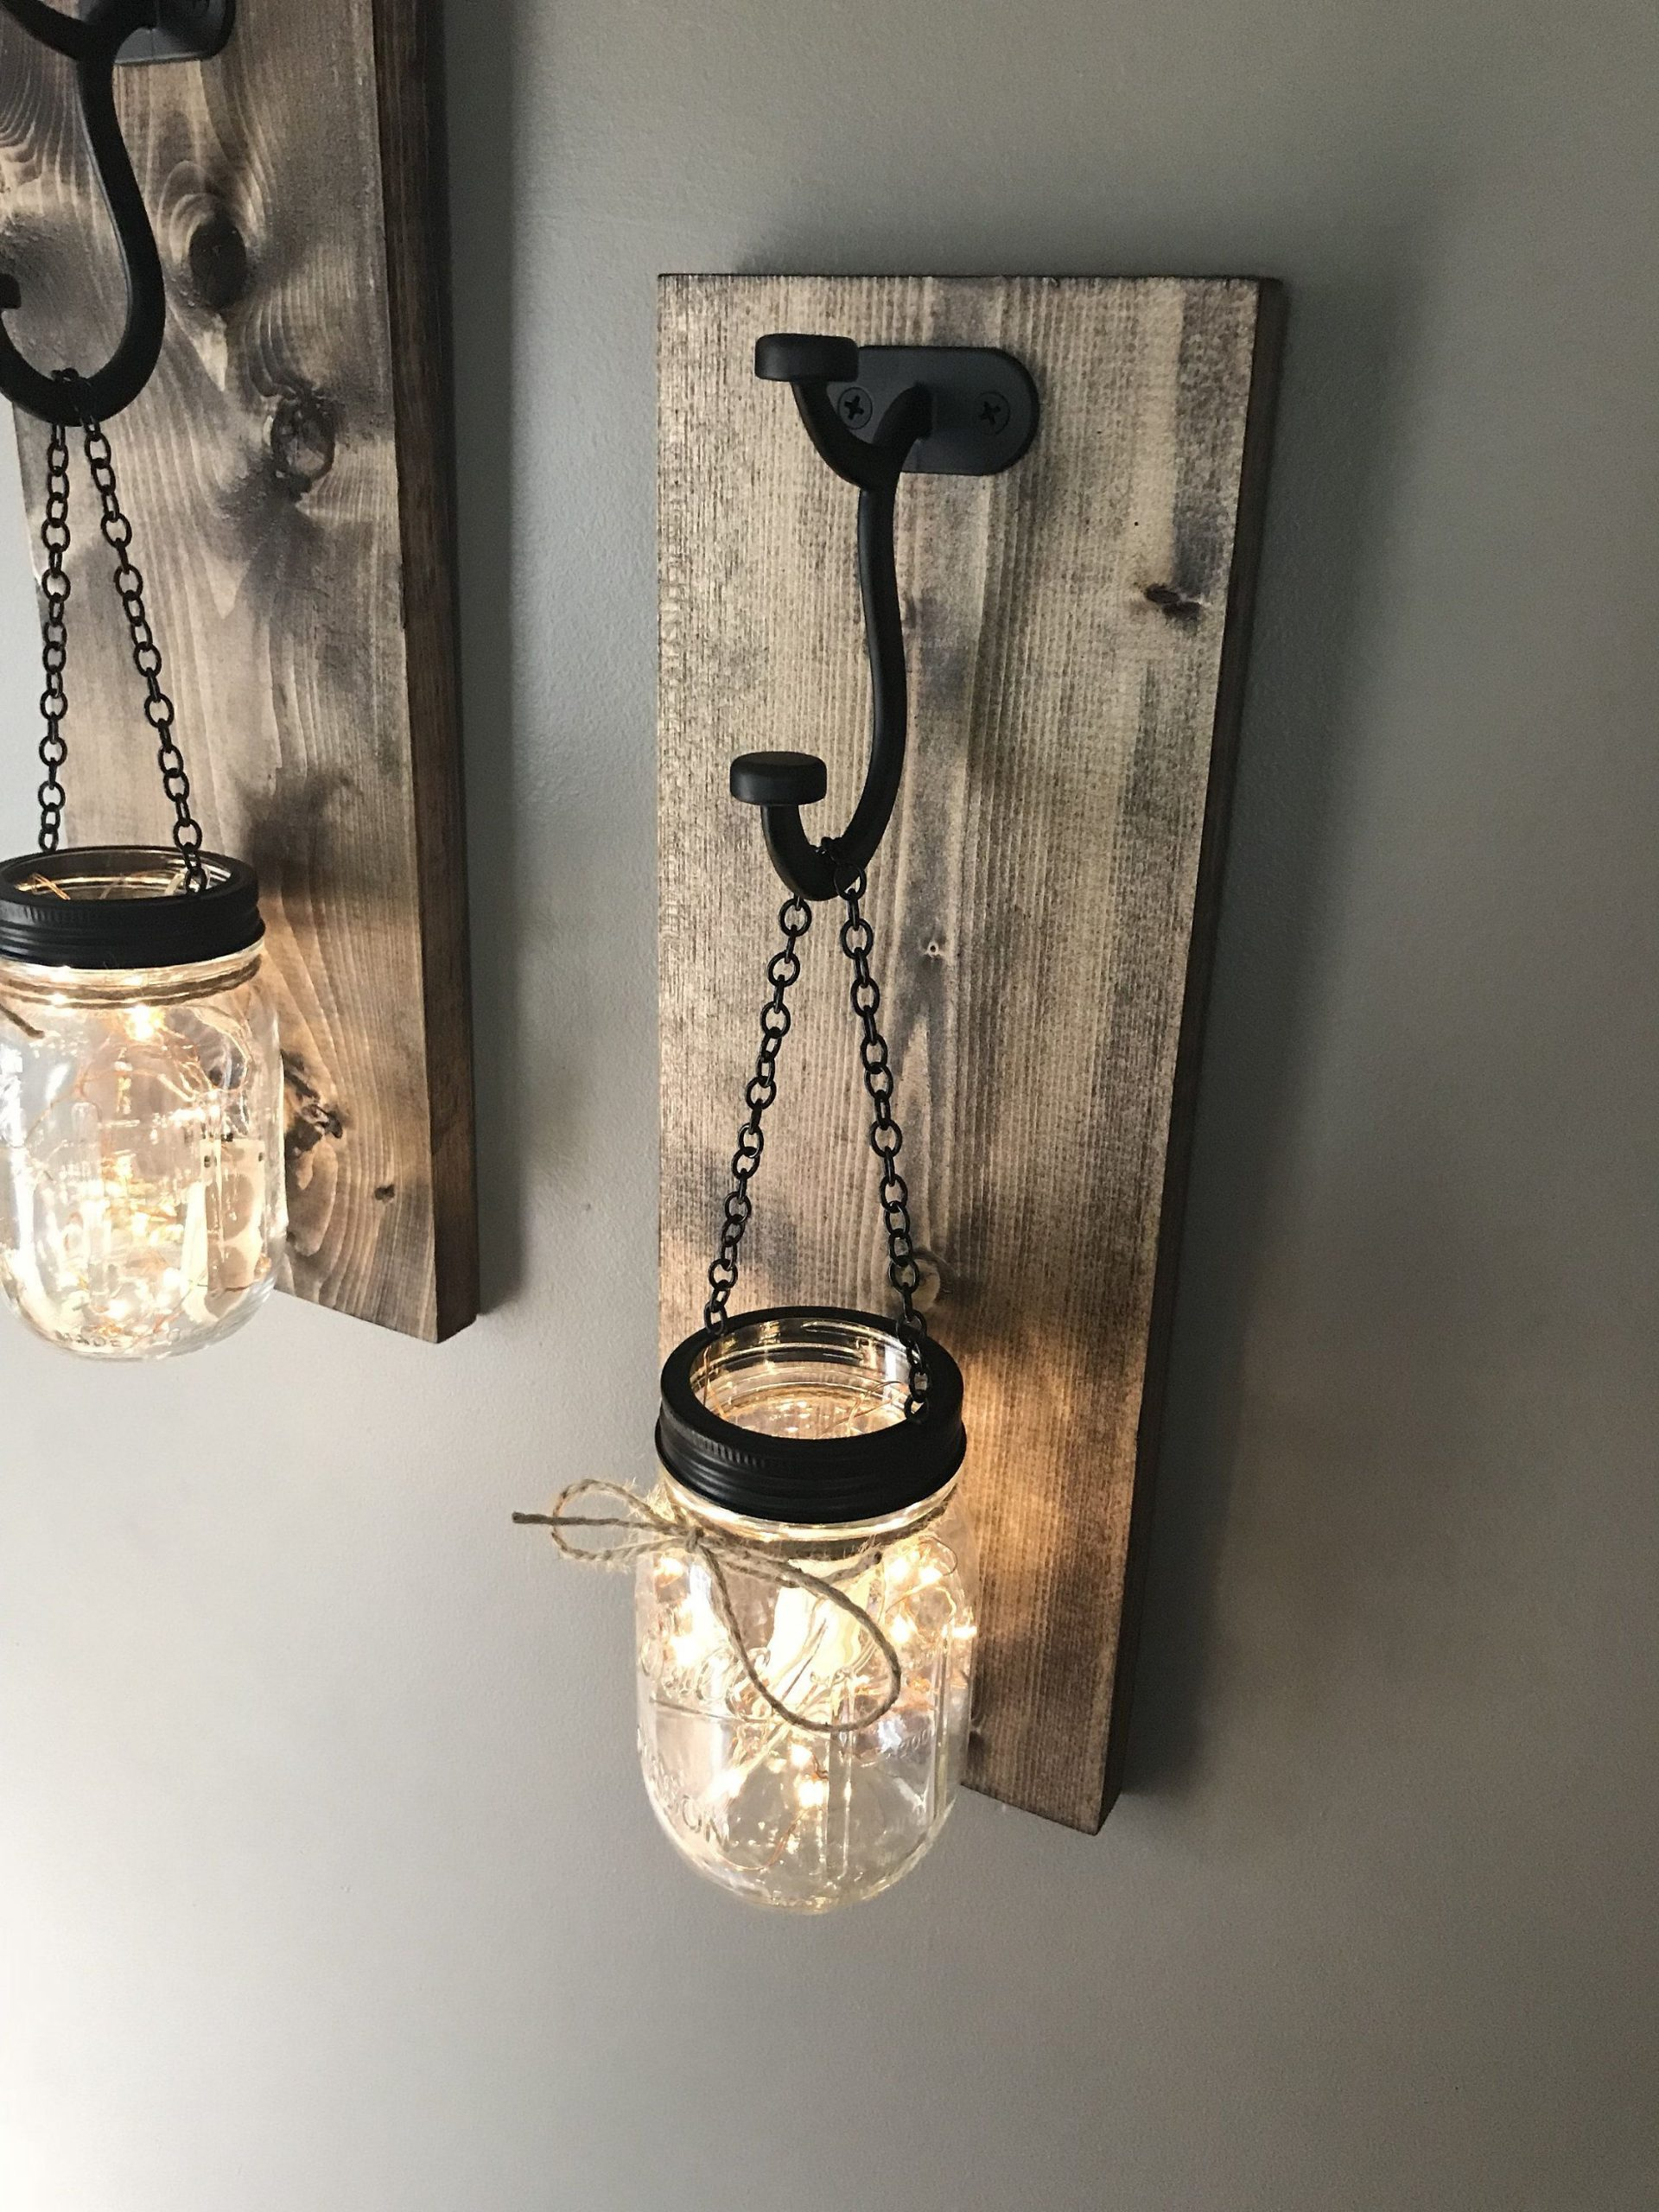 Hanging mason jar wall sconce | set of 2 mason jar sconce with lights | light up mason jar wall sconce | light up wall sconce set